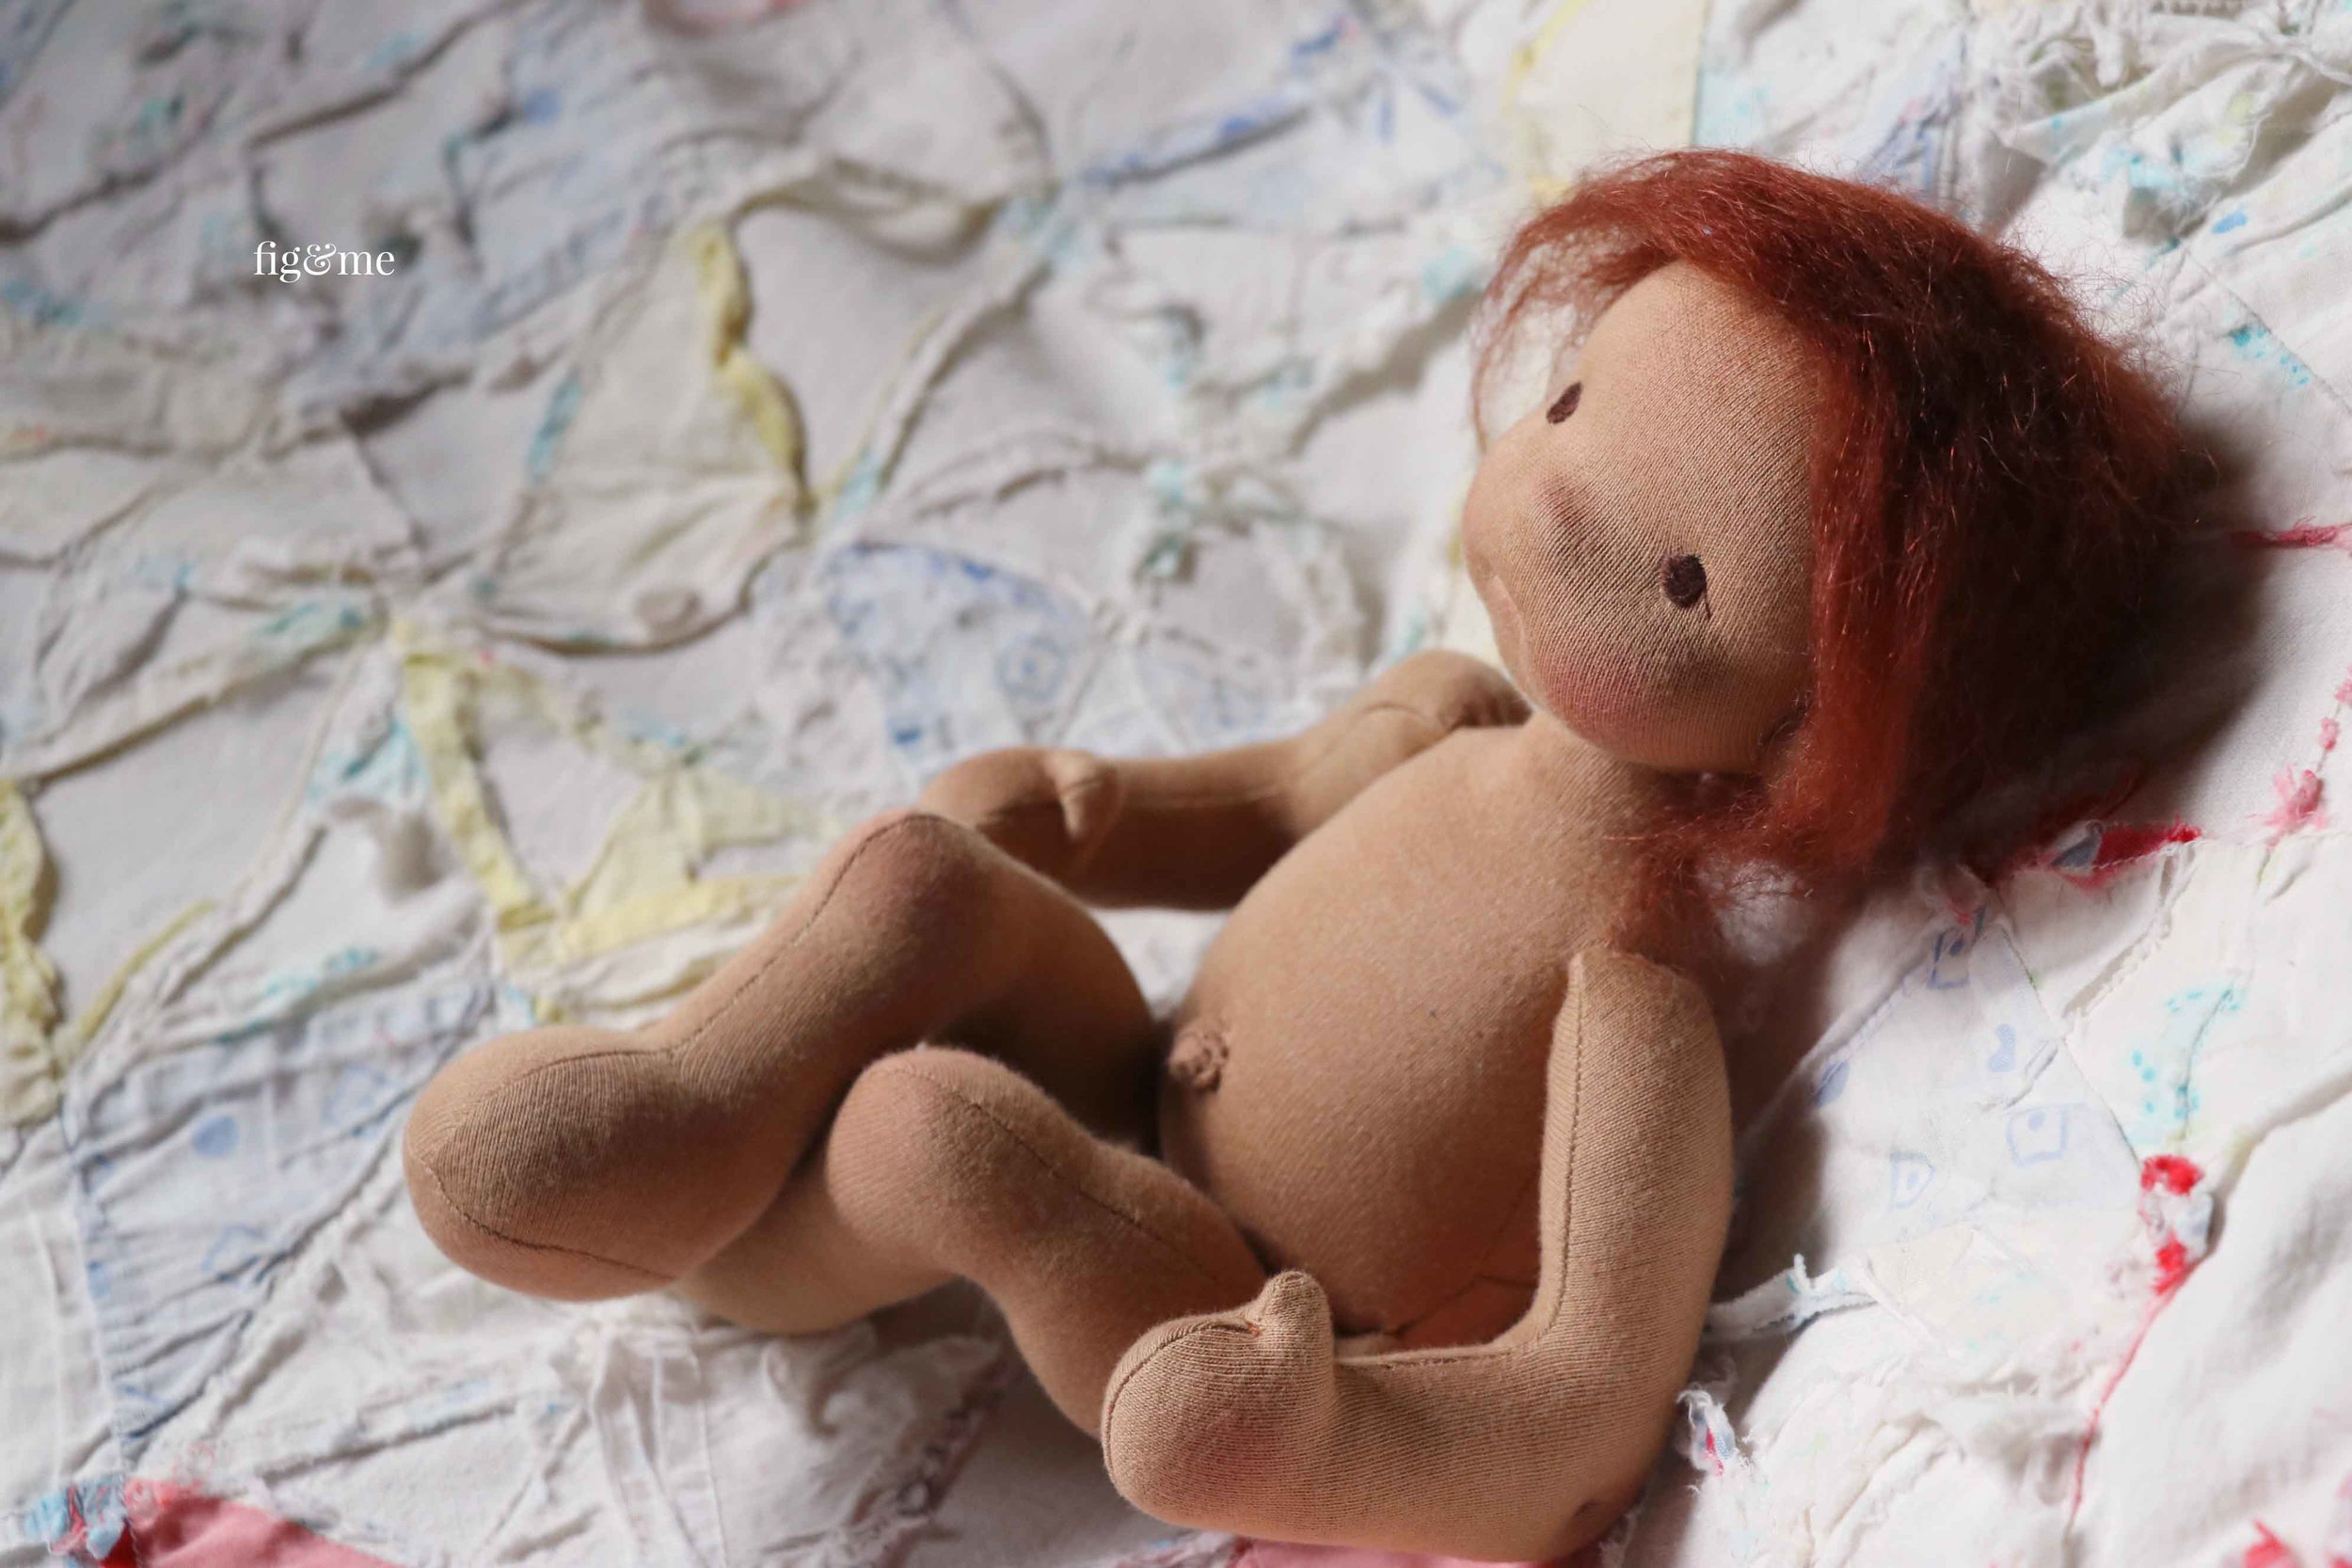 Learn dollmaking with the Baby Fig doll pattern, which introduces you to needle-felting techniques for face construction, mohair wig making, and using wool to stuff your doll. Pattern by Fig and Me.